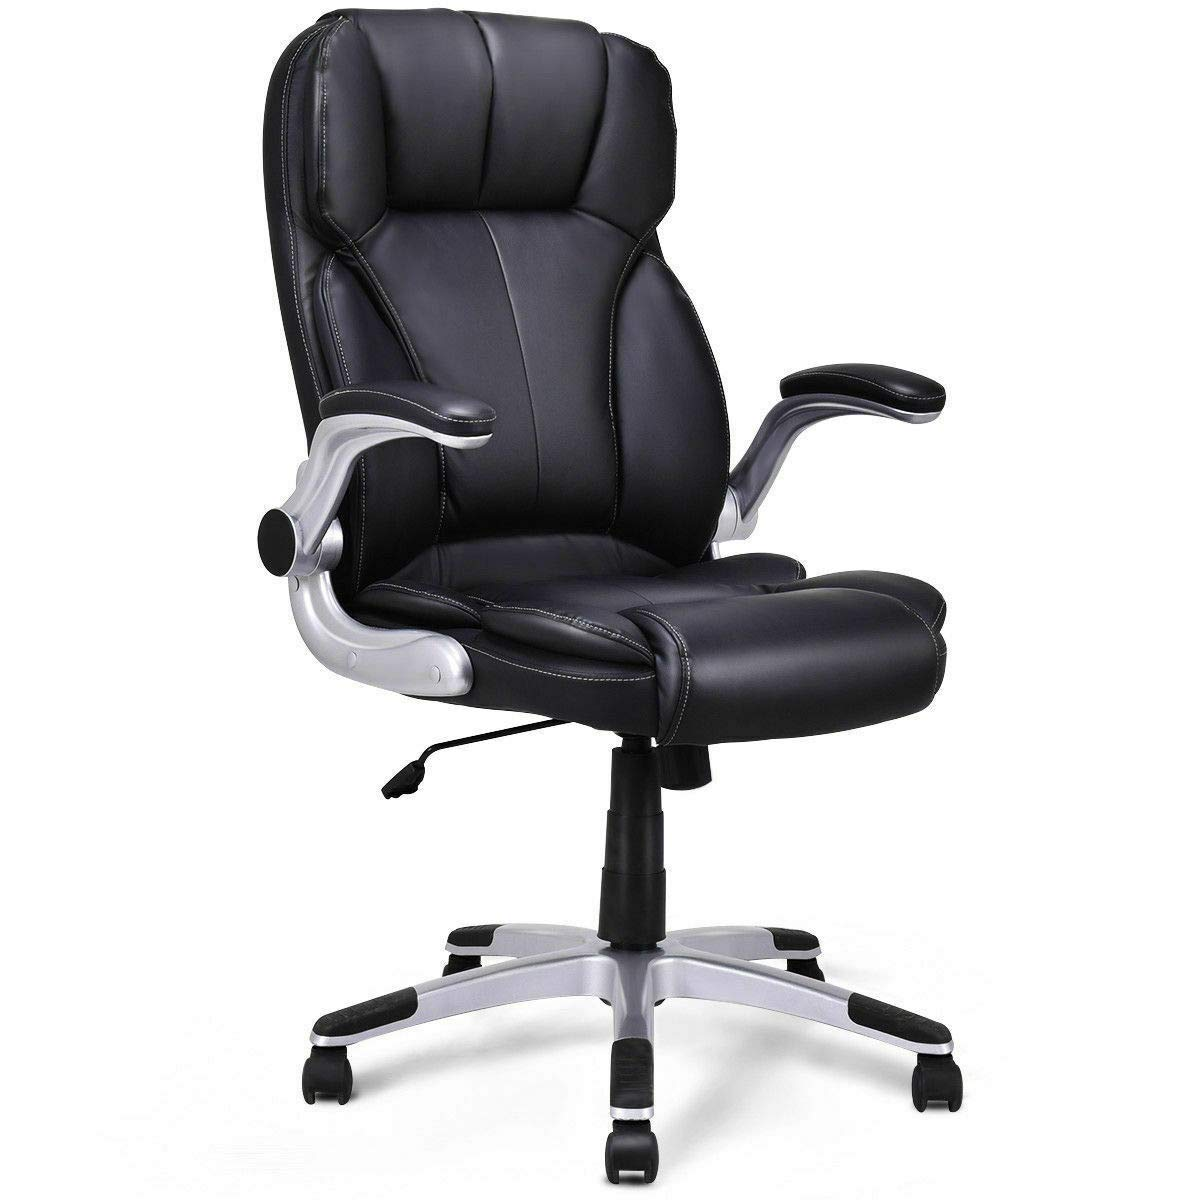 Seleq Black PU Leather High Back Desk Chair with Lifting Armrests for Office